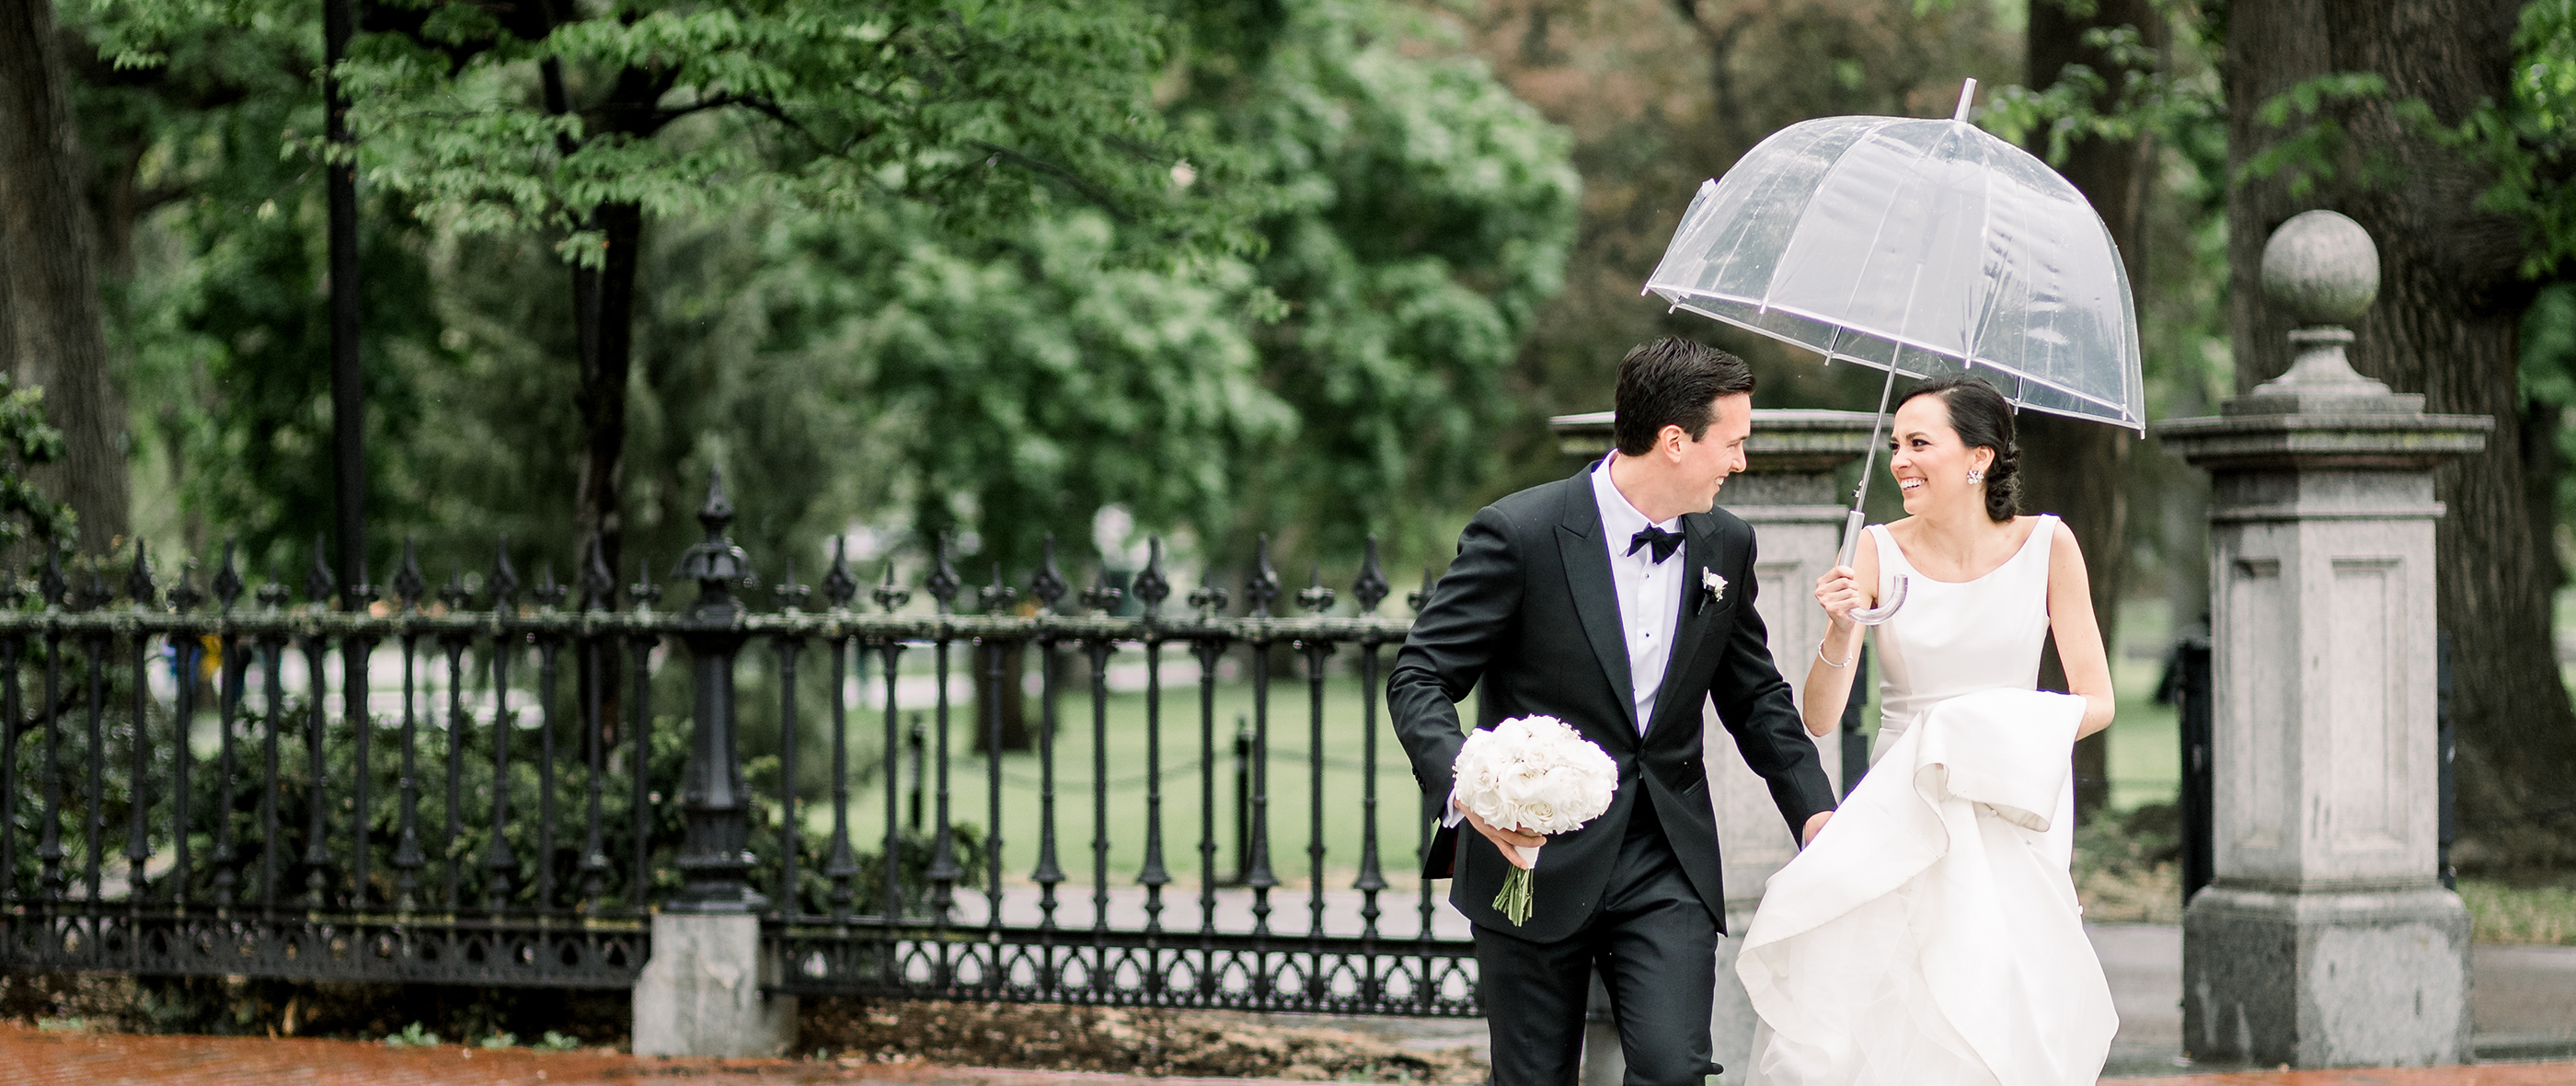 MAUREEN + ALEX | OMNI PARKER HOUSE WEDDING WEDDING